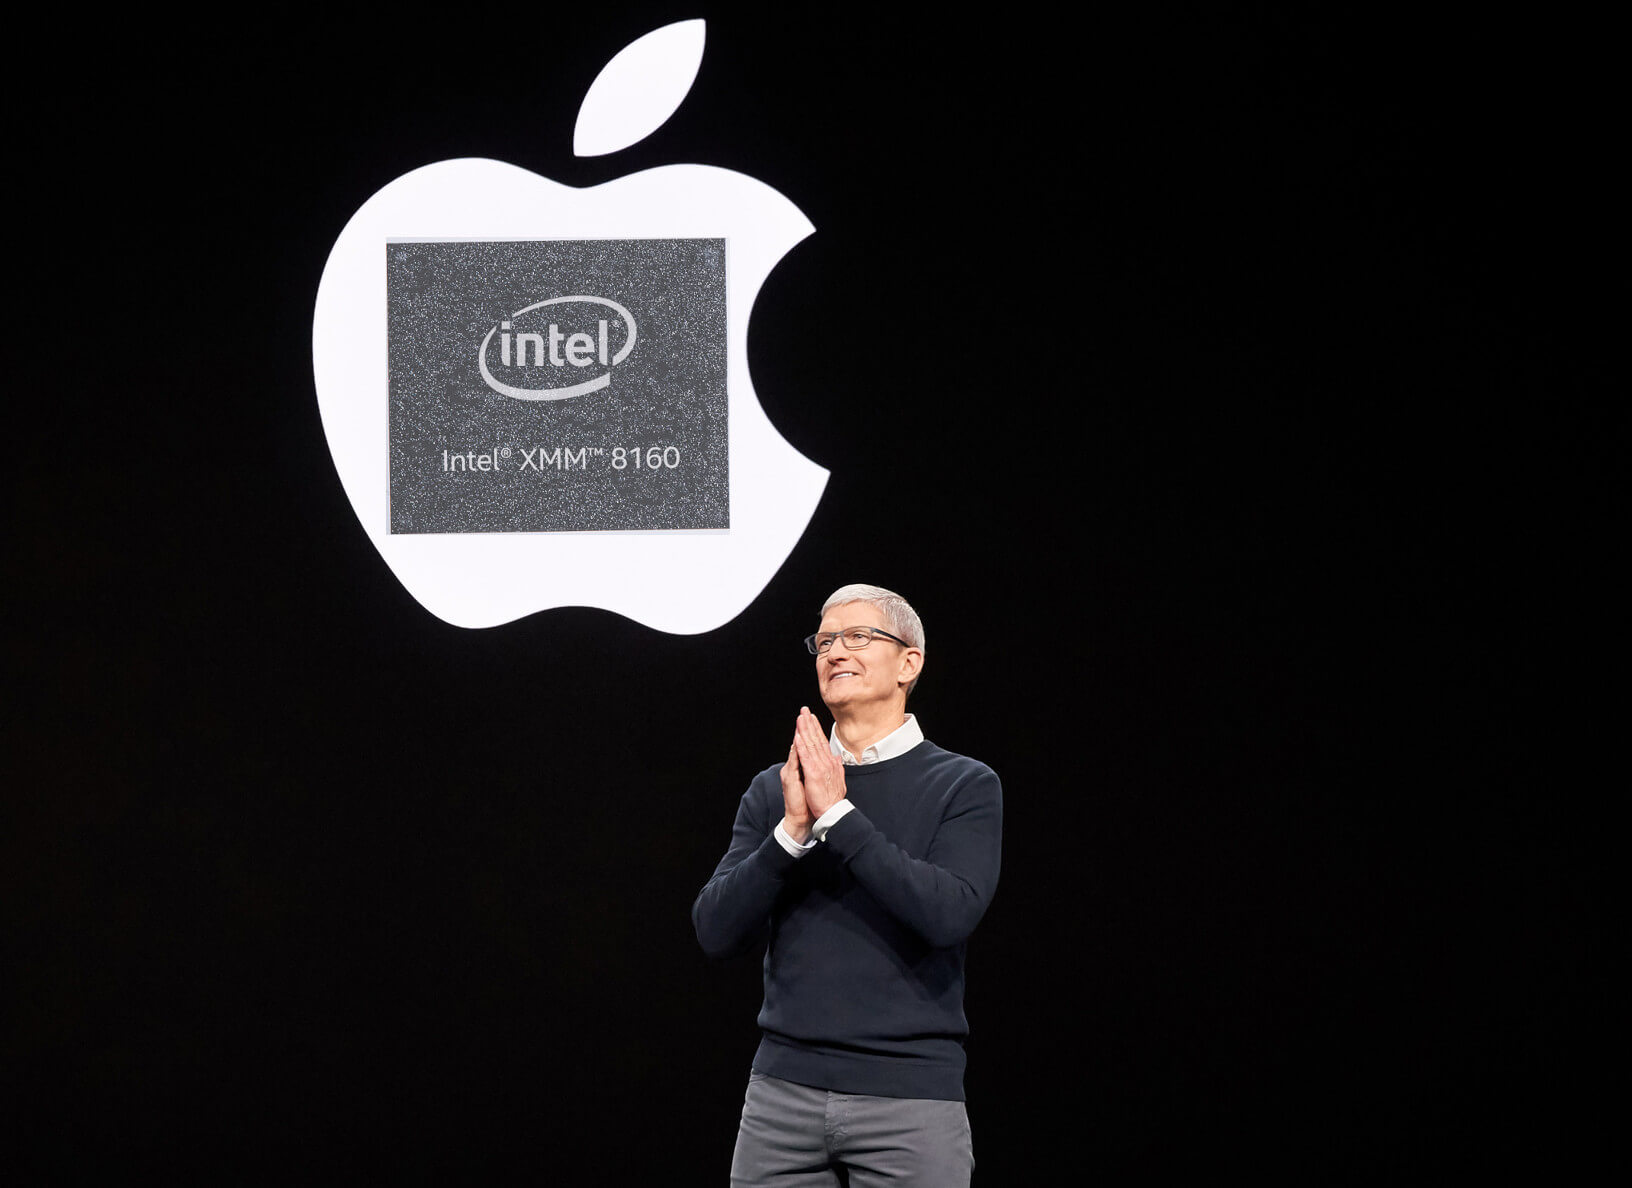 Apple Chips Intel ARm